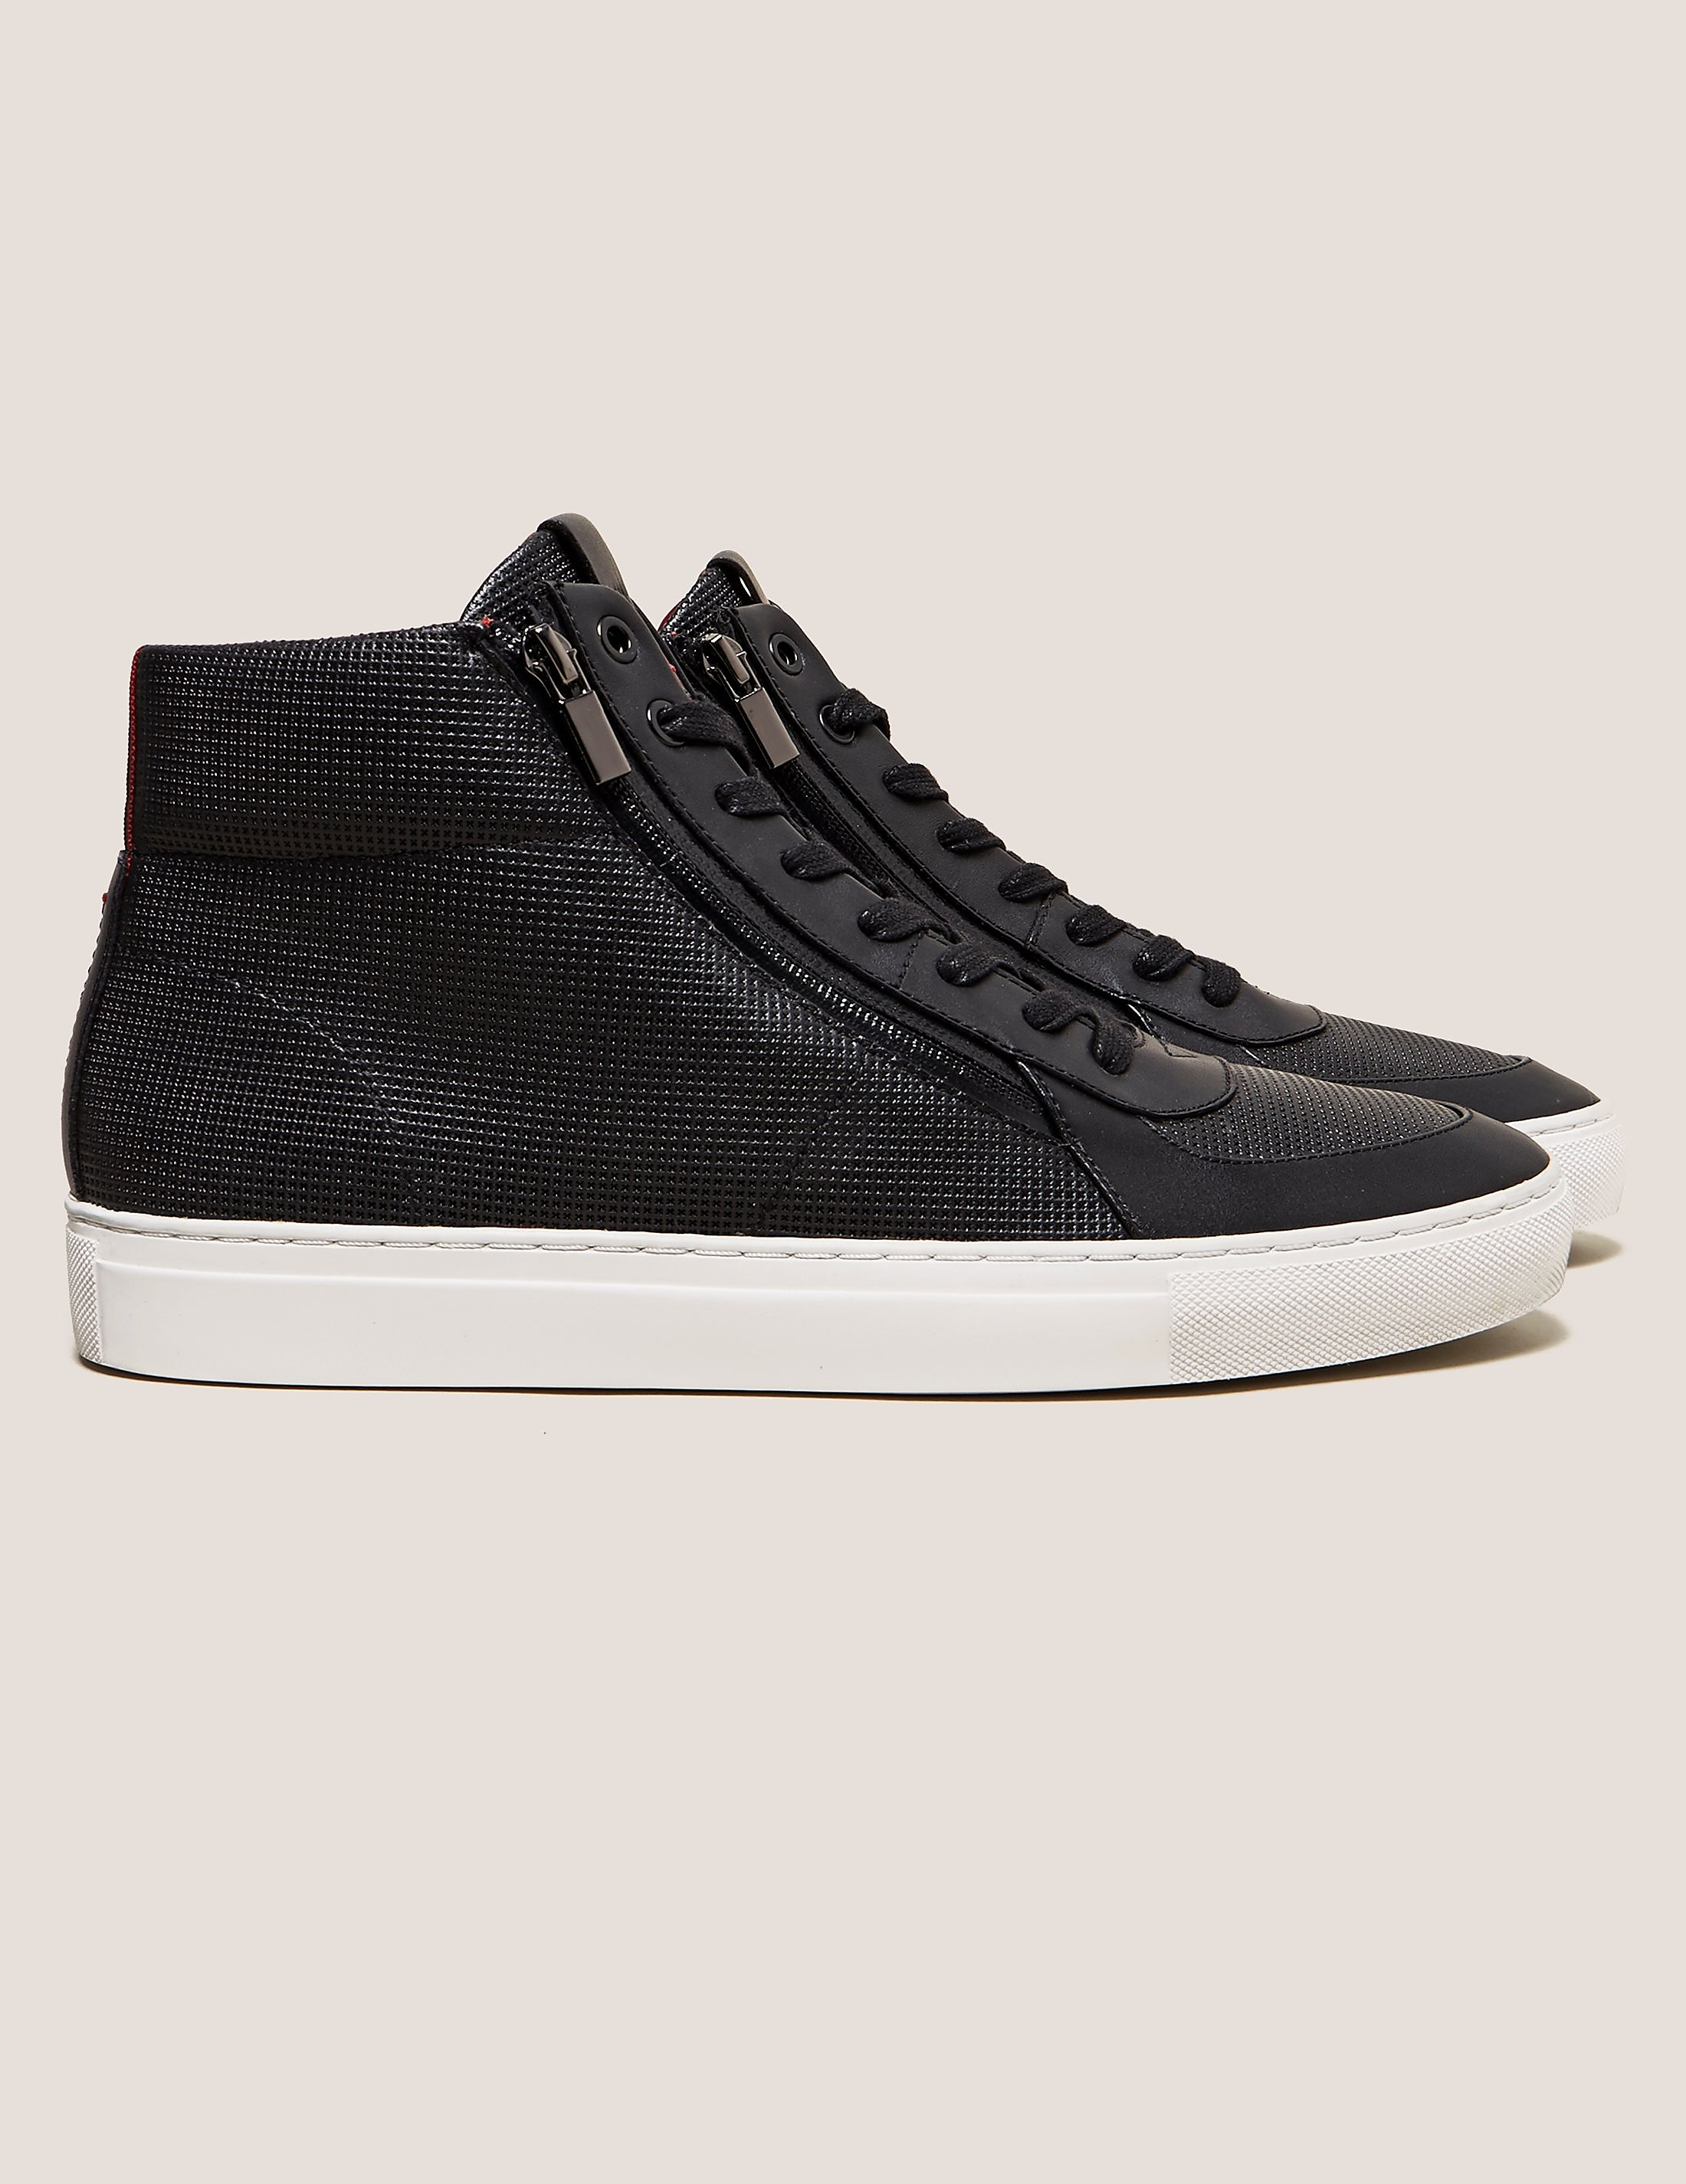 HUGO Hito High Top Trainers